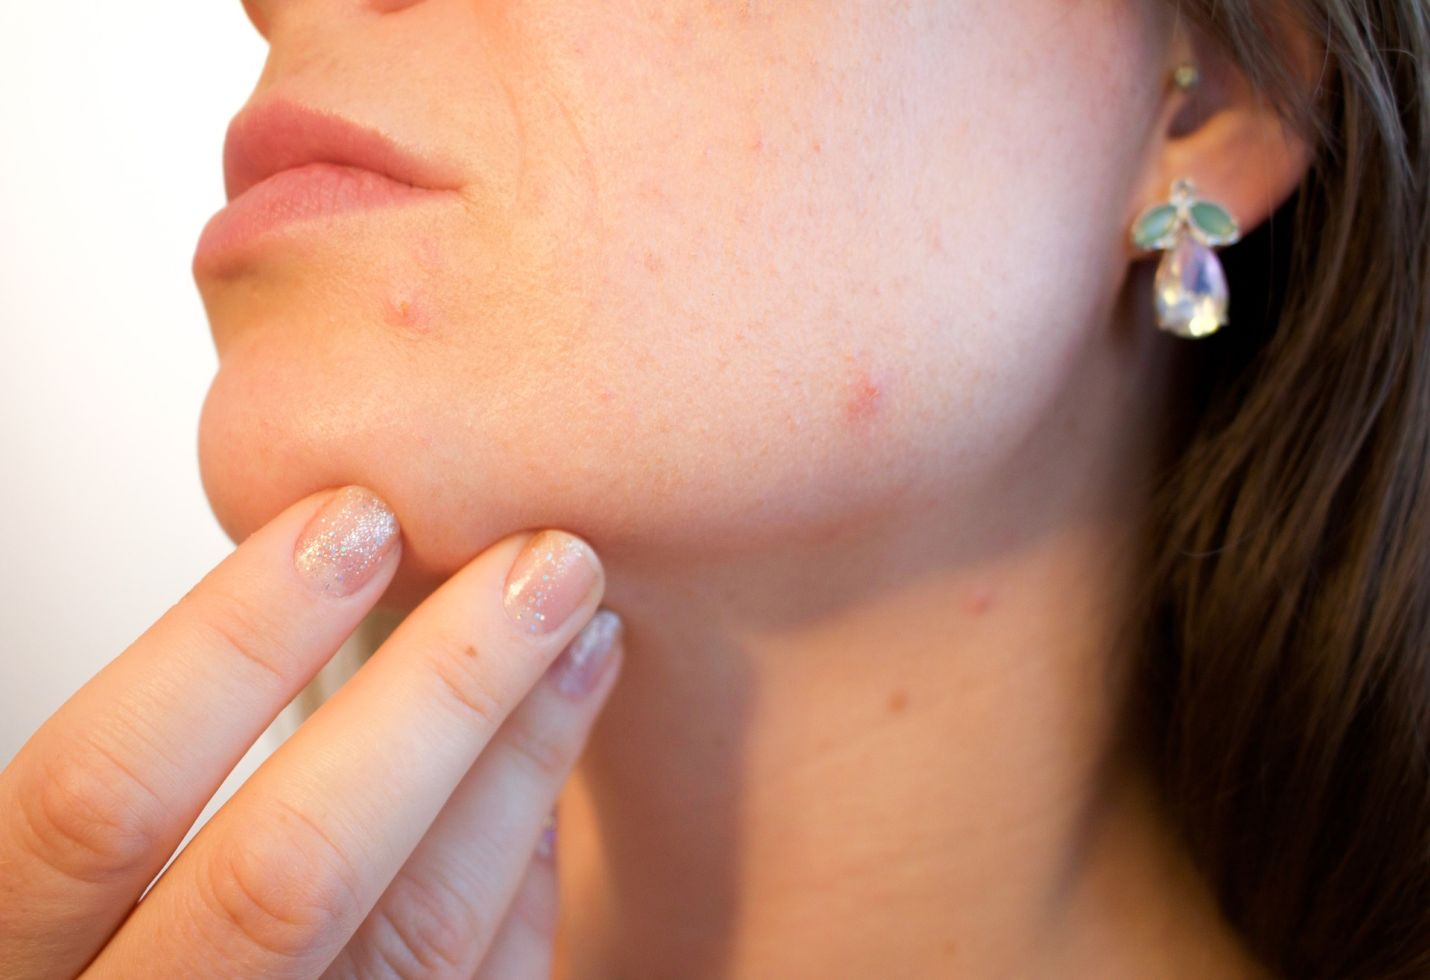 Dealing with Acne? Read this